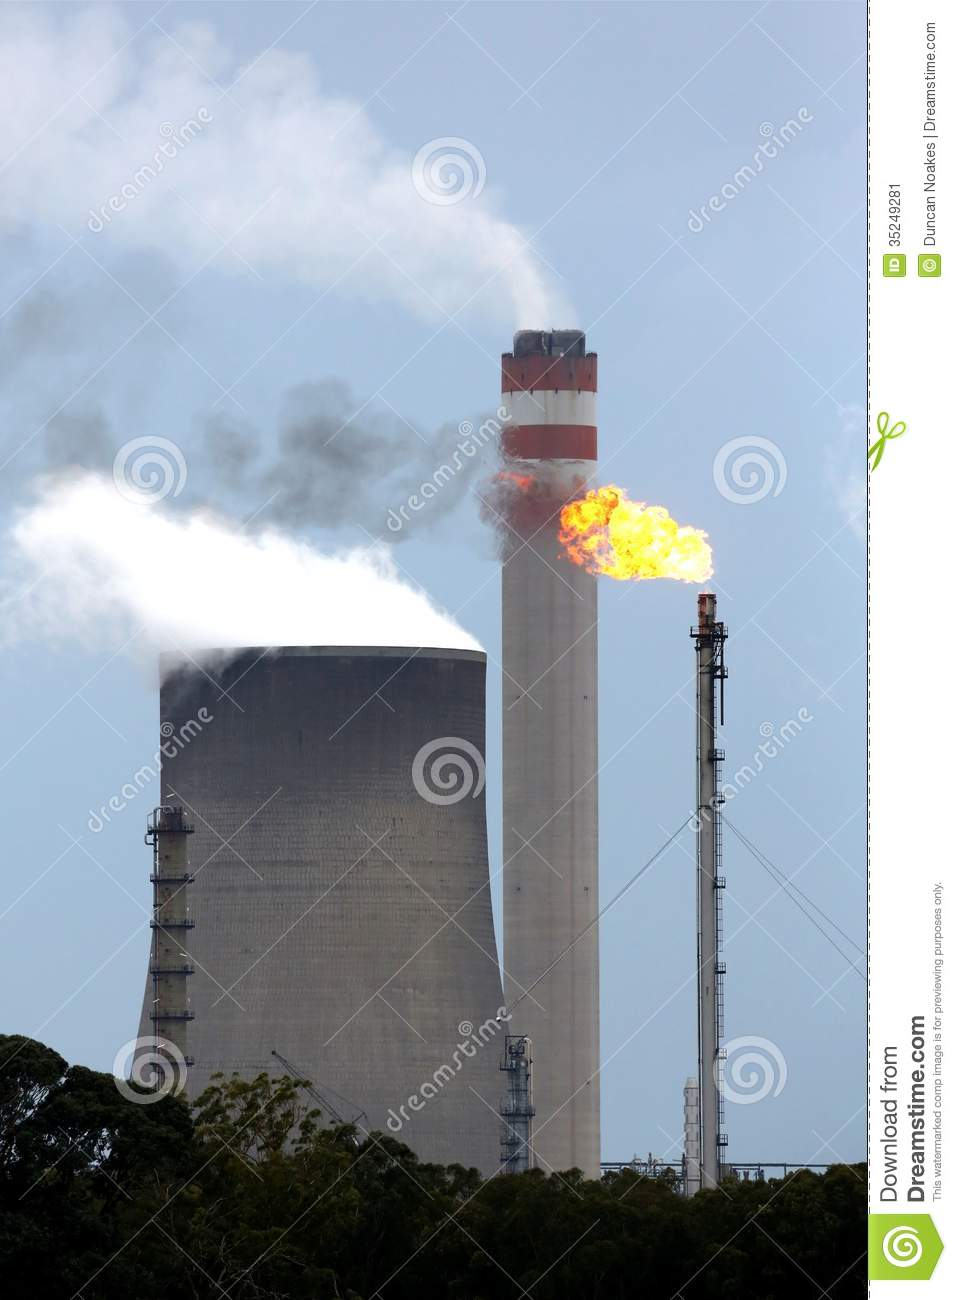 energy production factory stock image